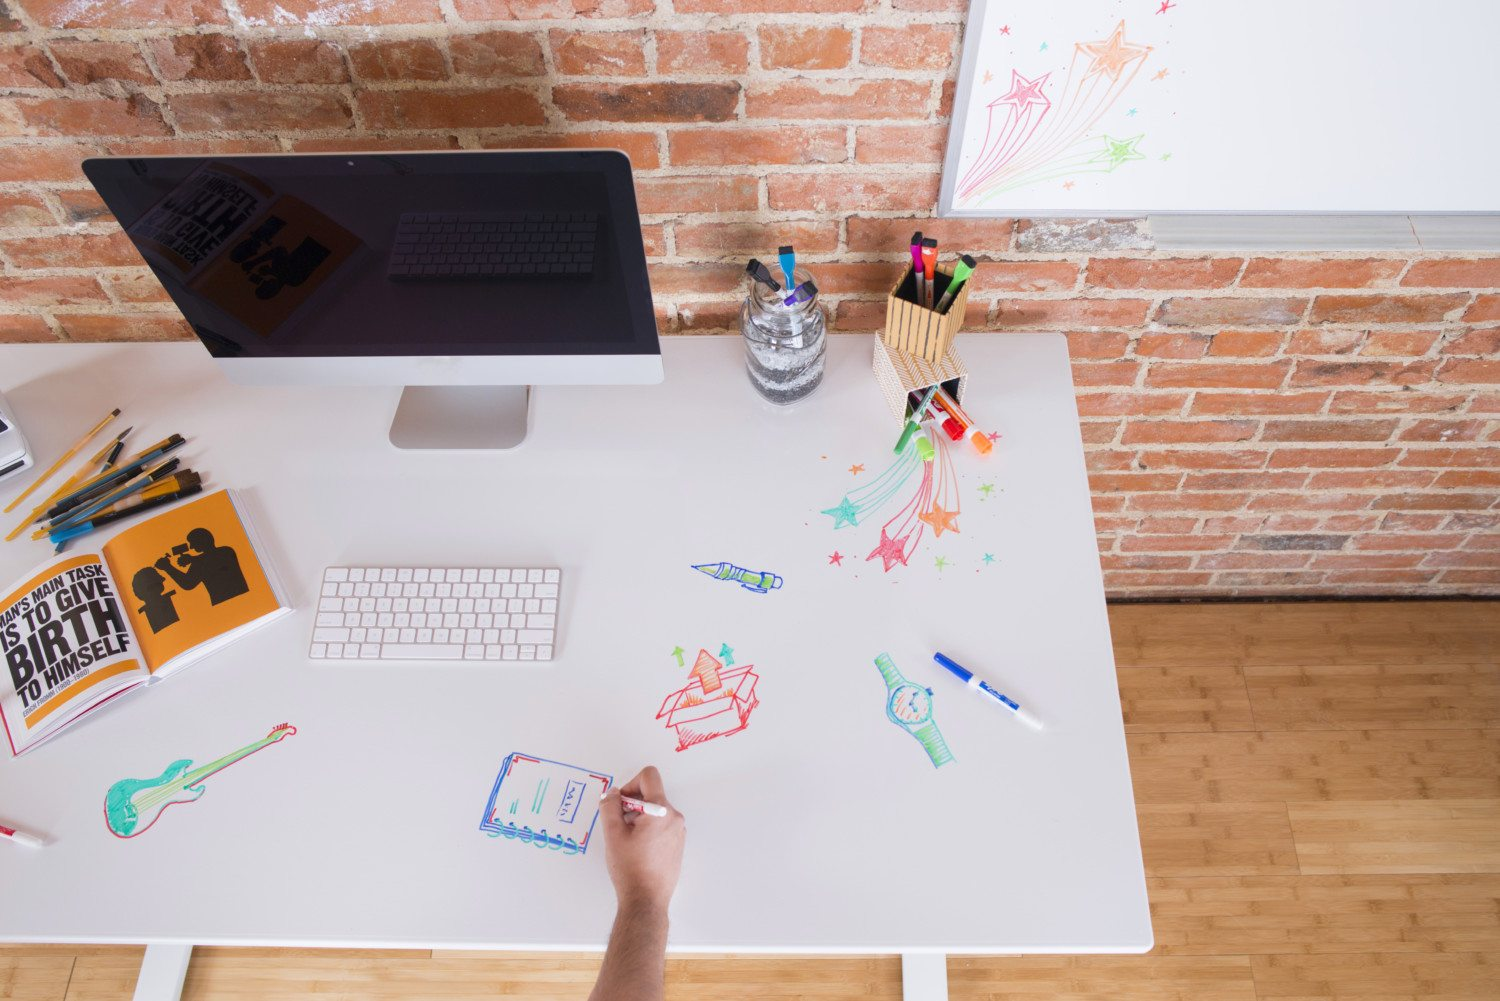 Turn A Wall Into A Whiteboard Whiteboard Deskshield Makes Desk A Dry Erase Board Simplemost